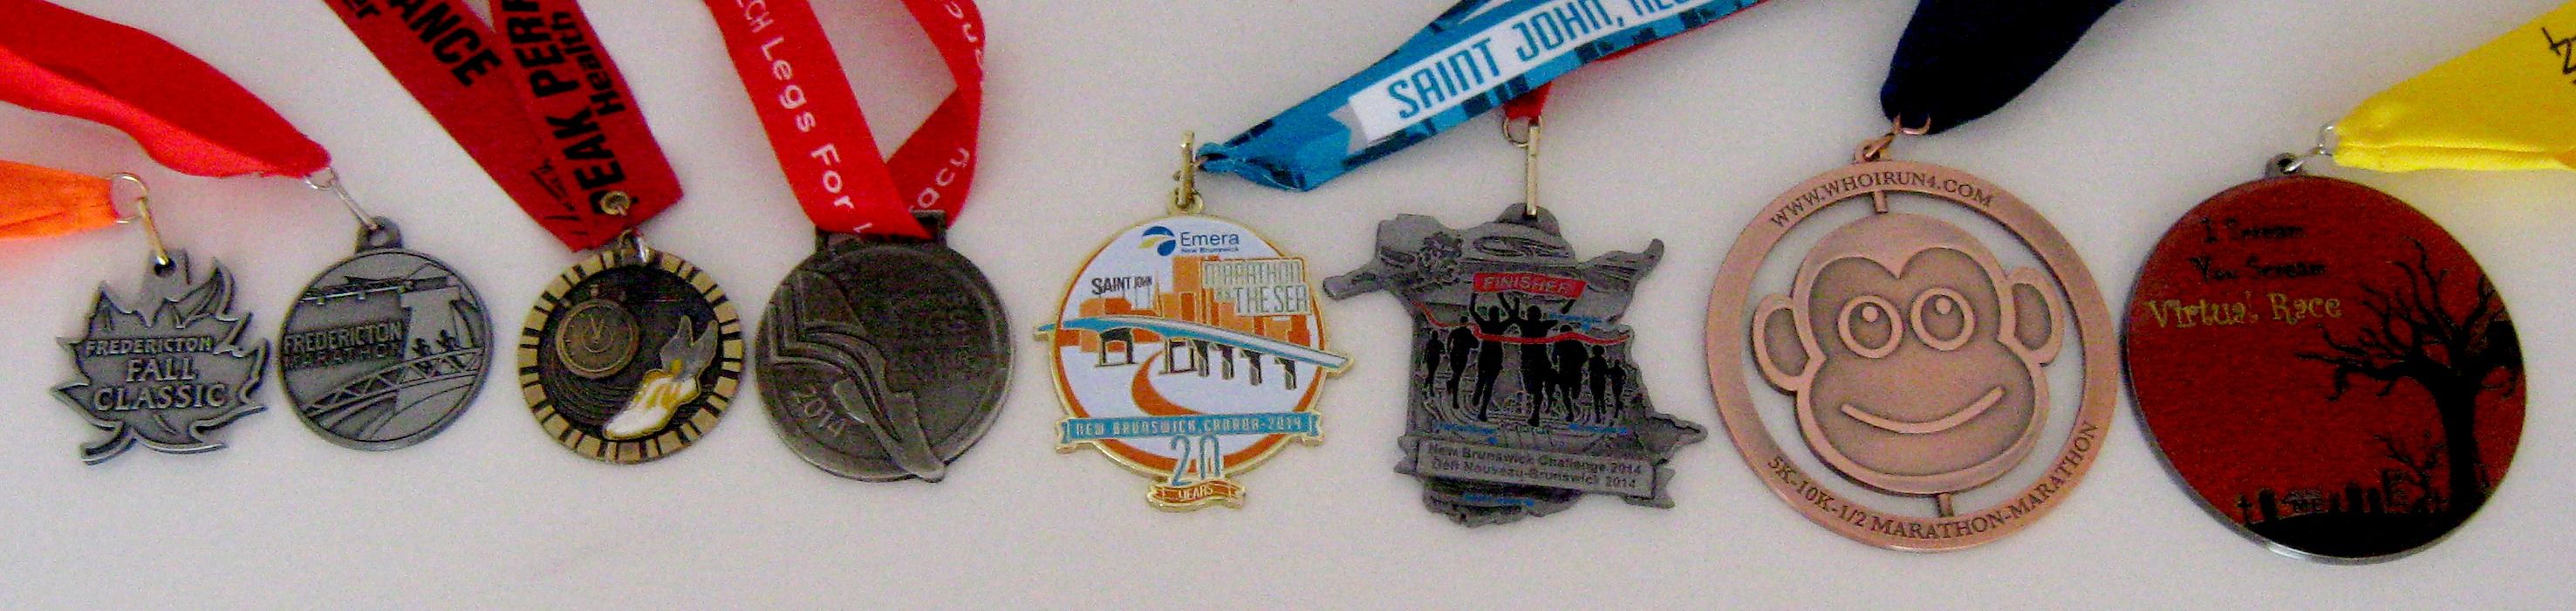 2014 medals for races